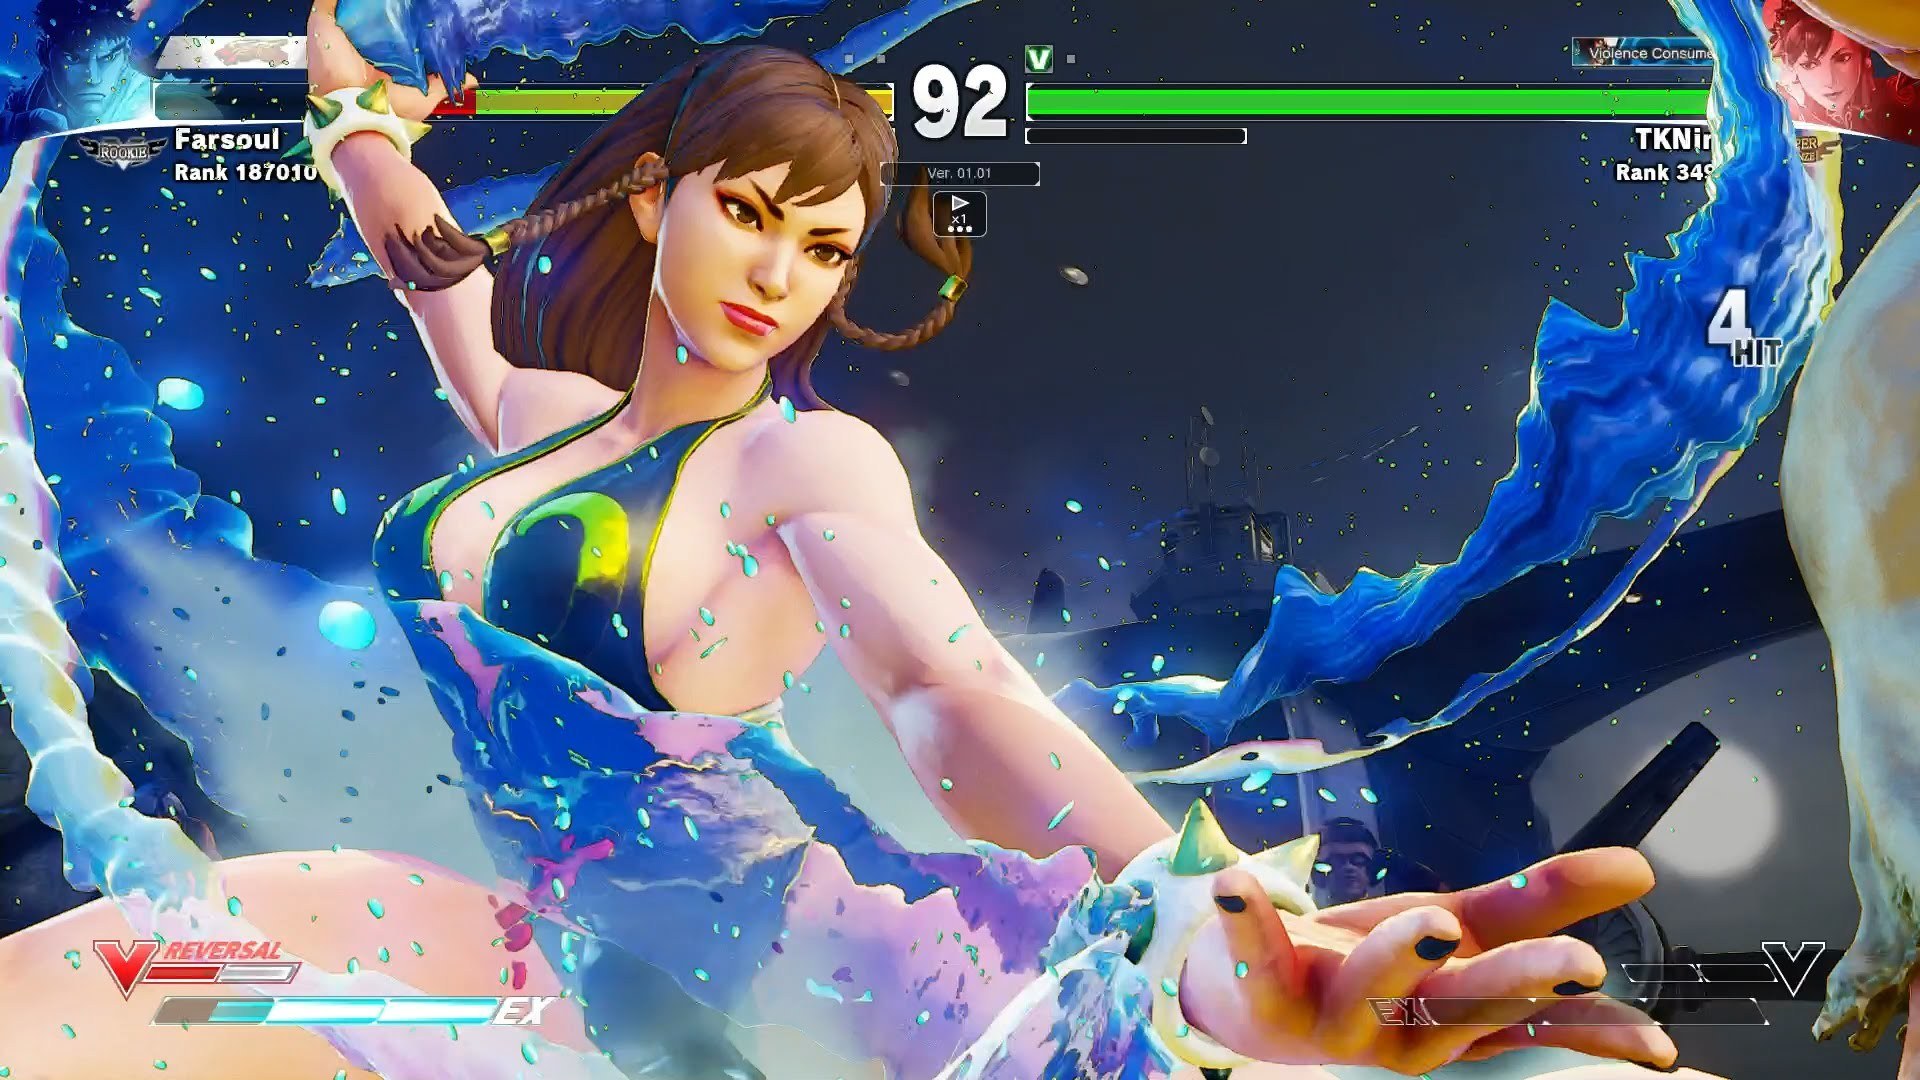 [PS4] Street Fighter 5: Ryu (Farsoul) vs Sexy Chun-Li (TKNinja)【HD 】